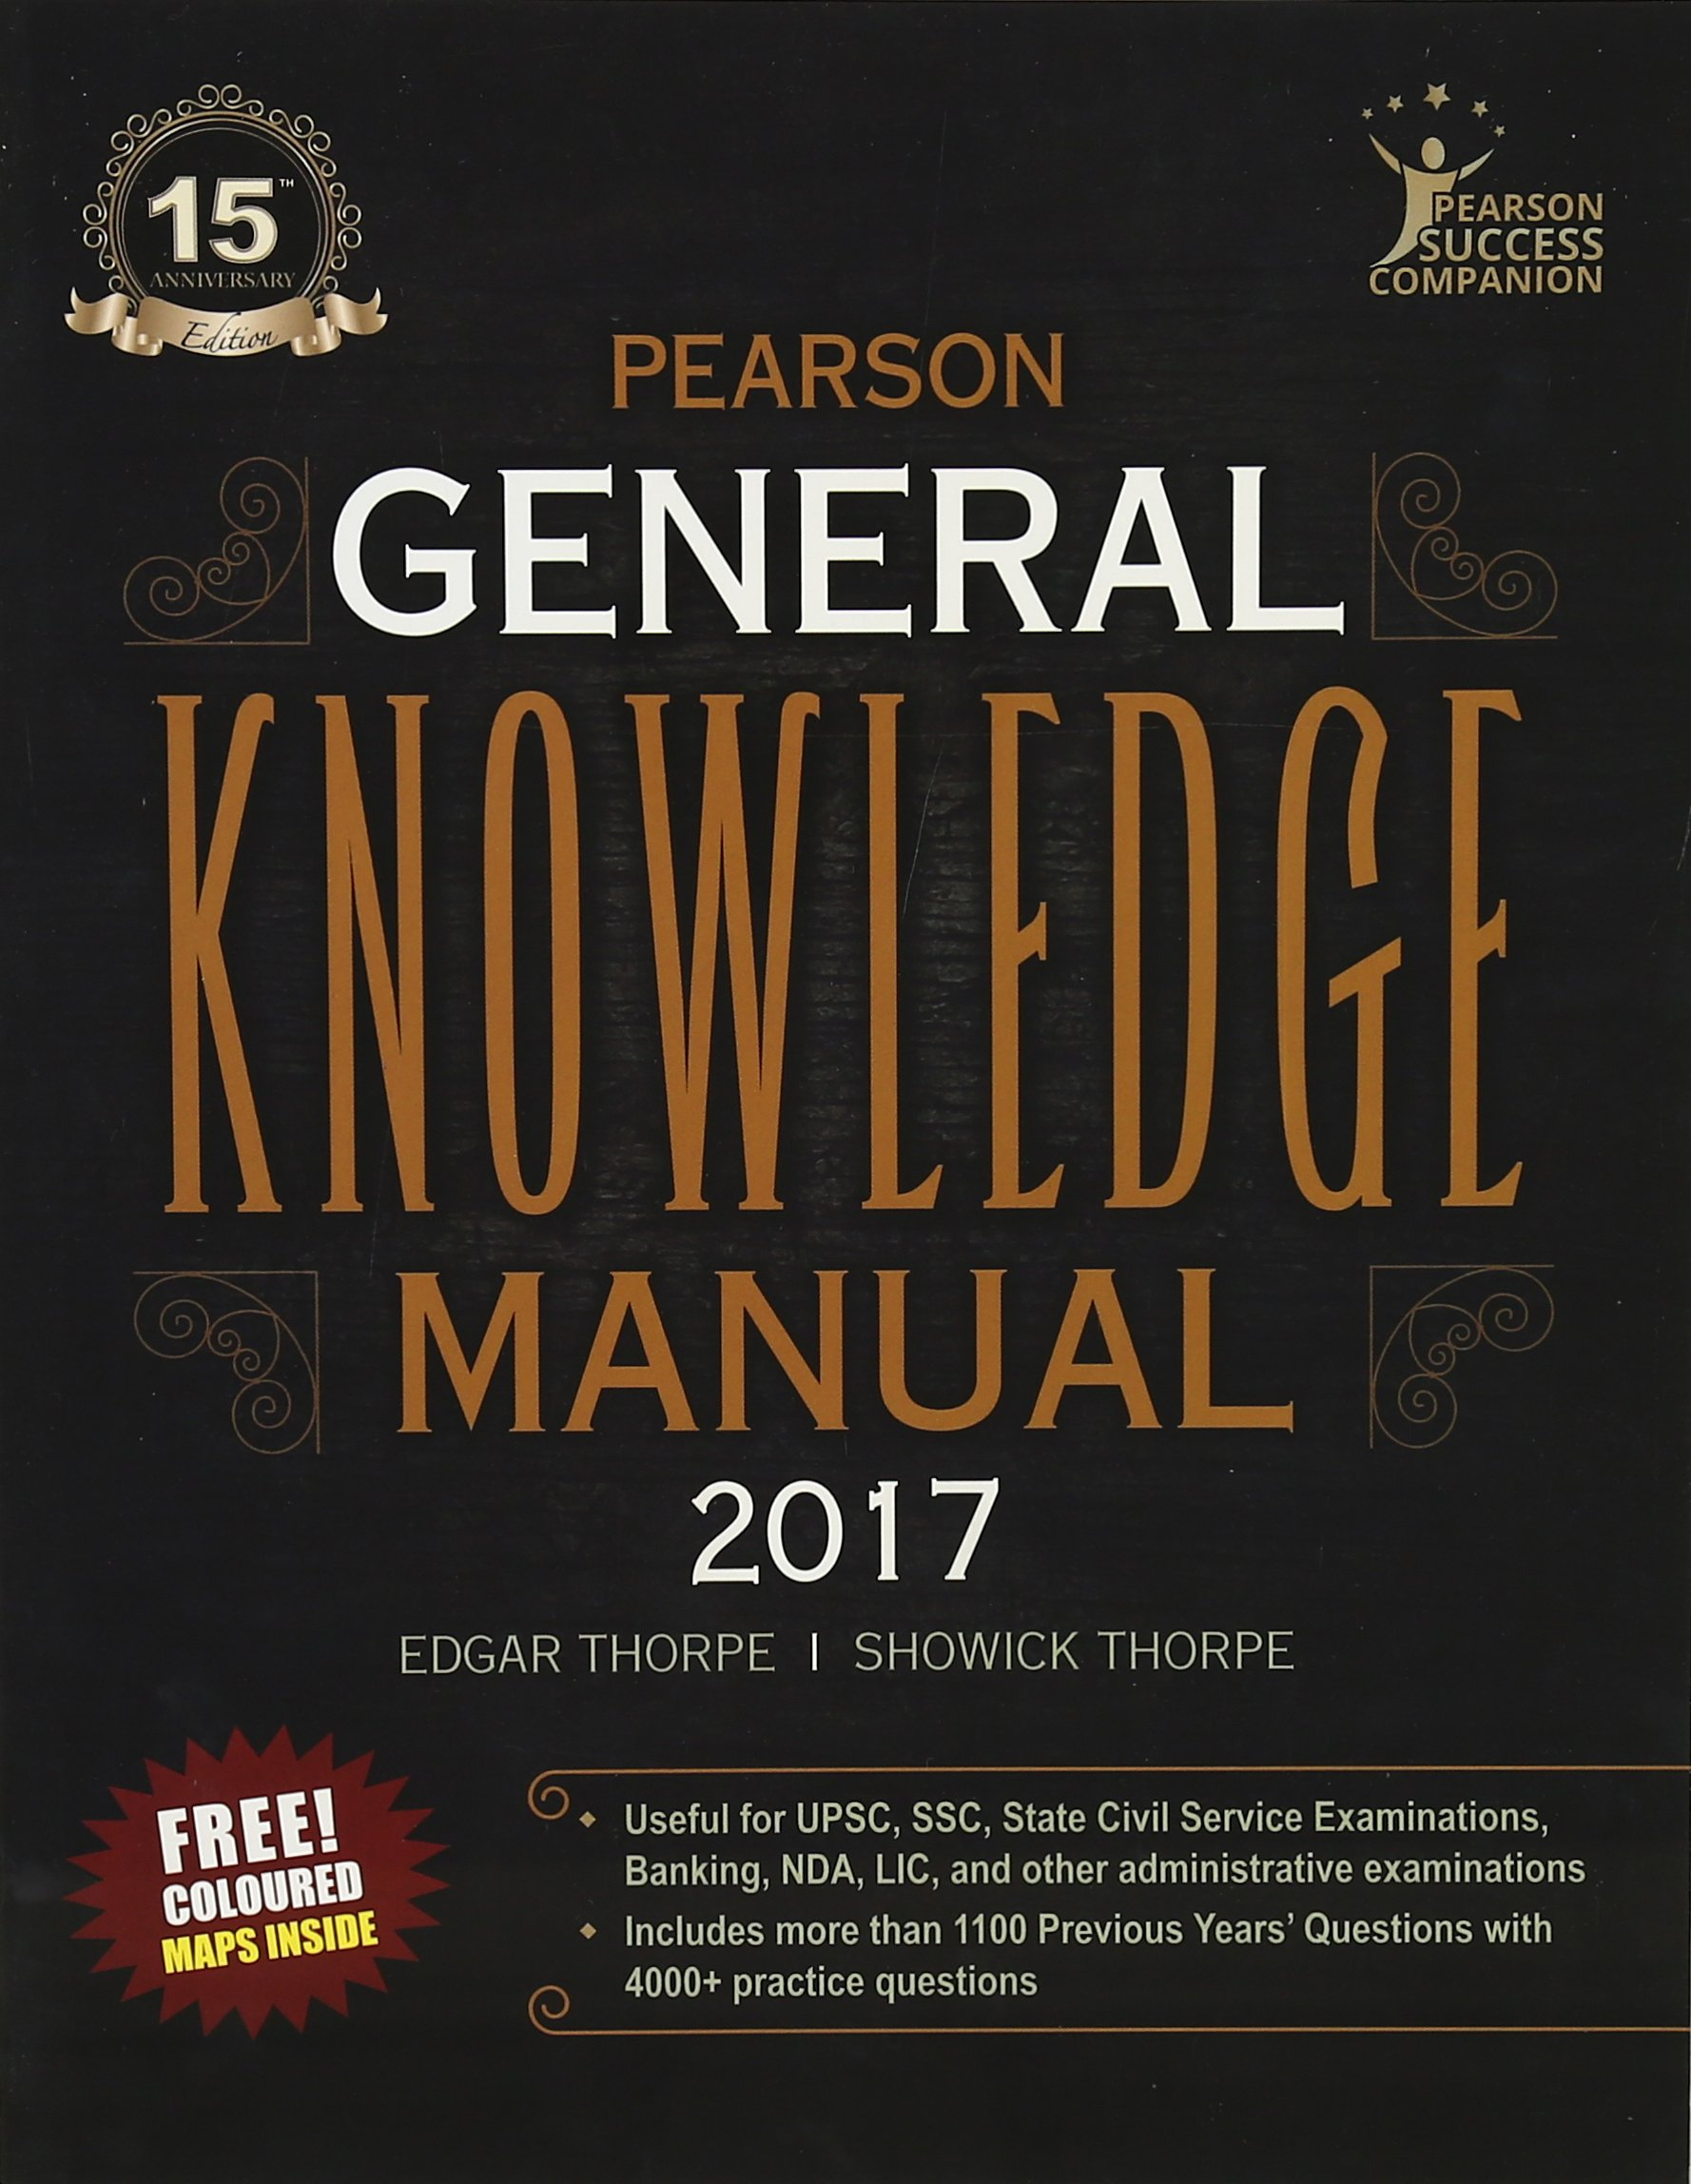 Buy The Pearson General Knowledge Manual 2017 (Old Edition) Book